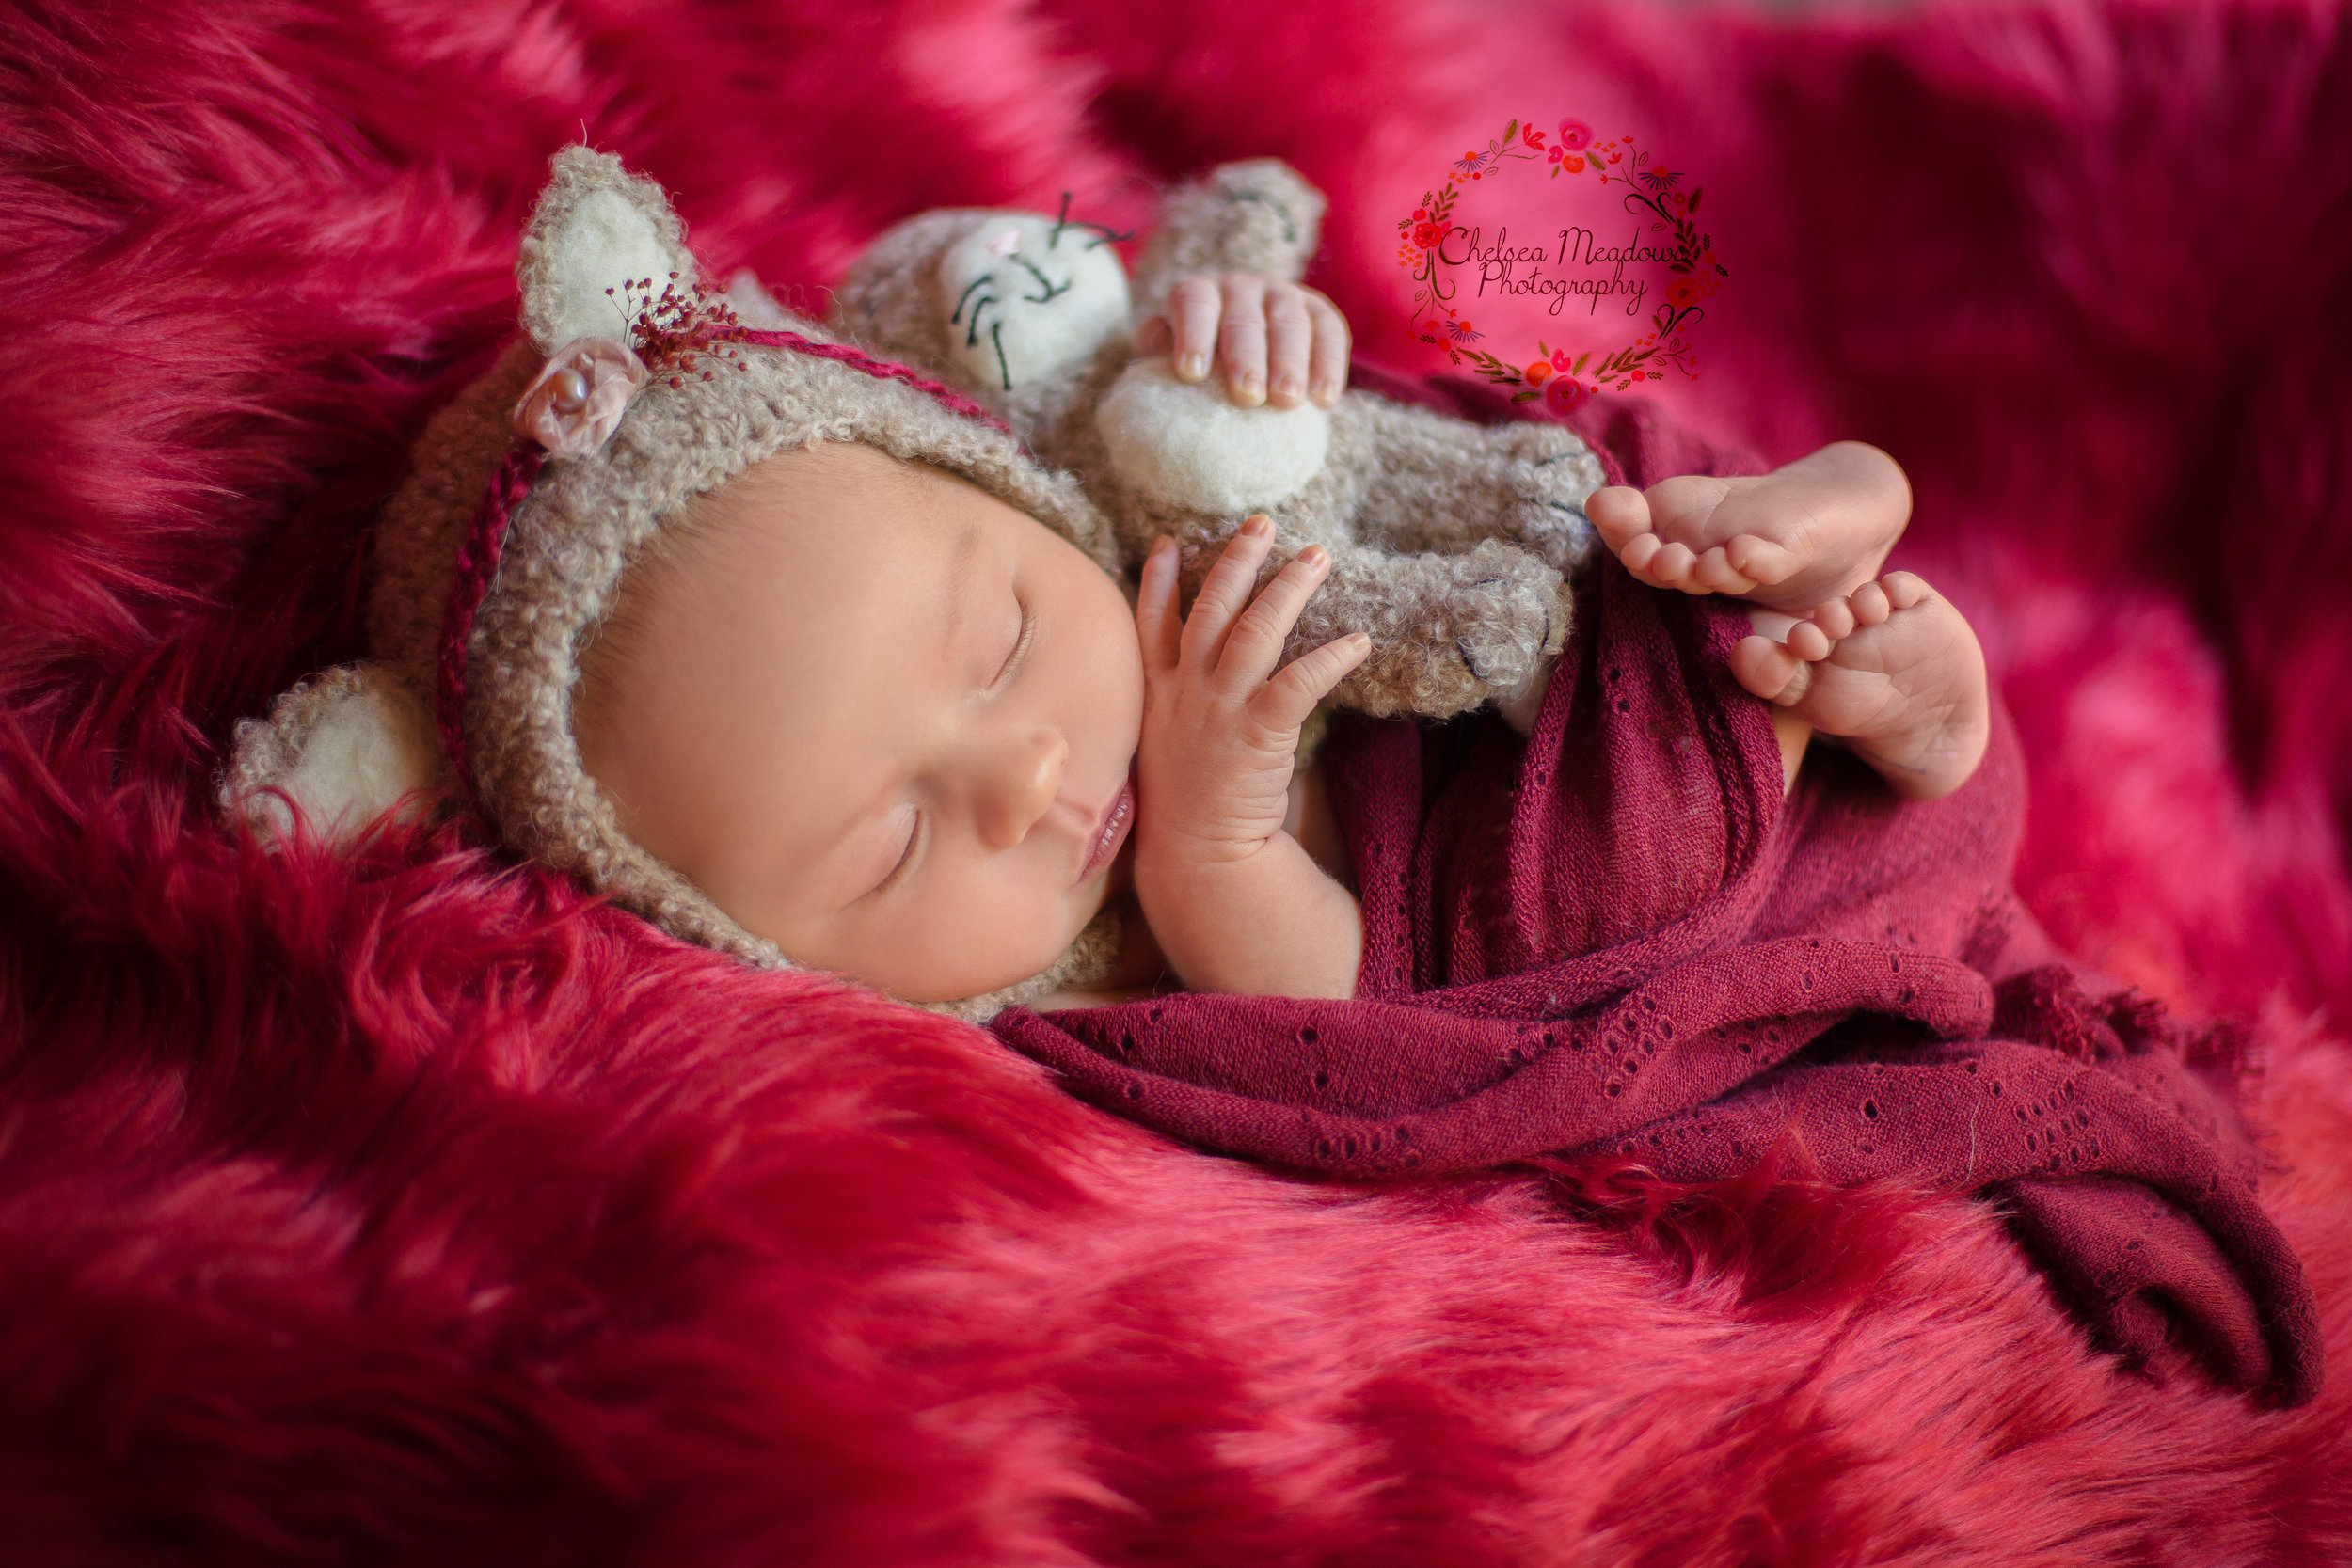 Ella Newborn Photos - Nashville Newborn Photographer - Chelsea Meadows Photography (45).jpg